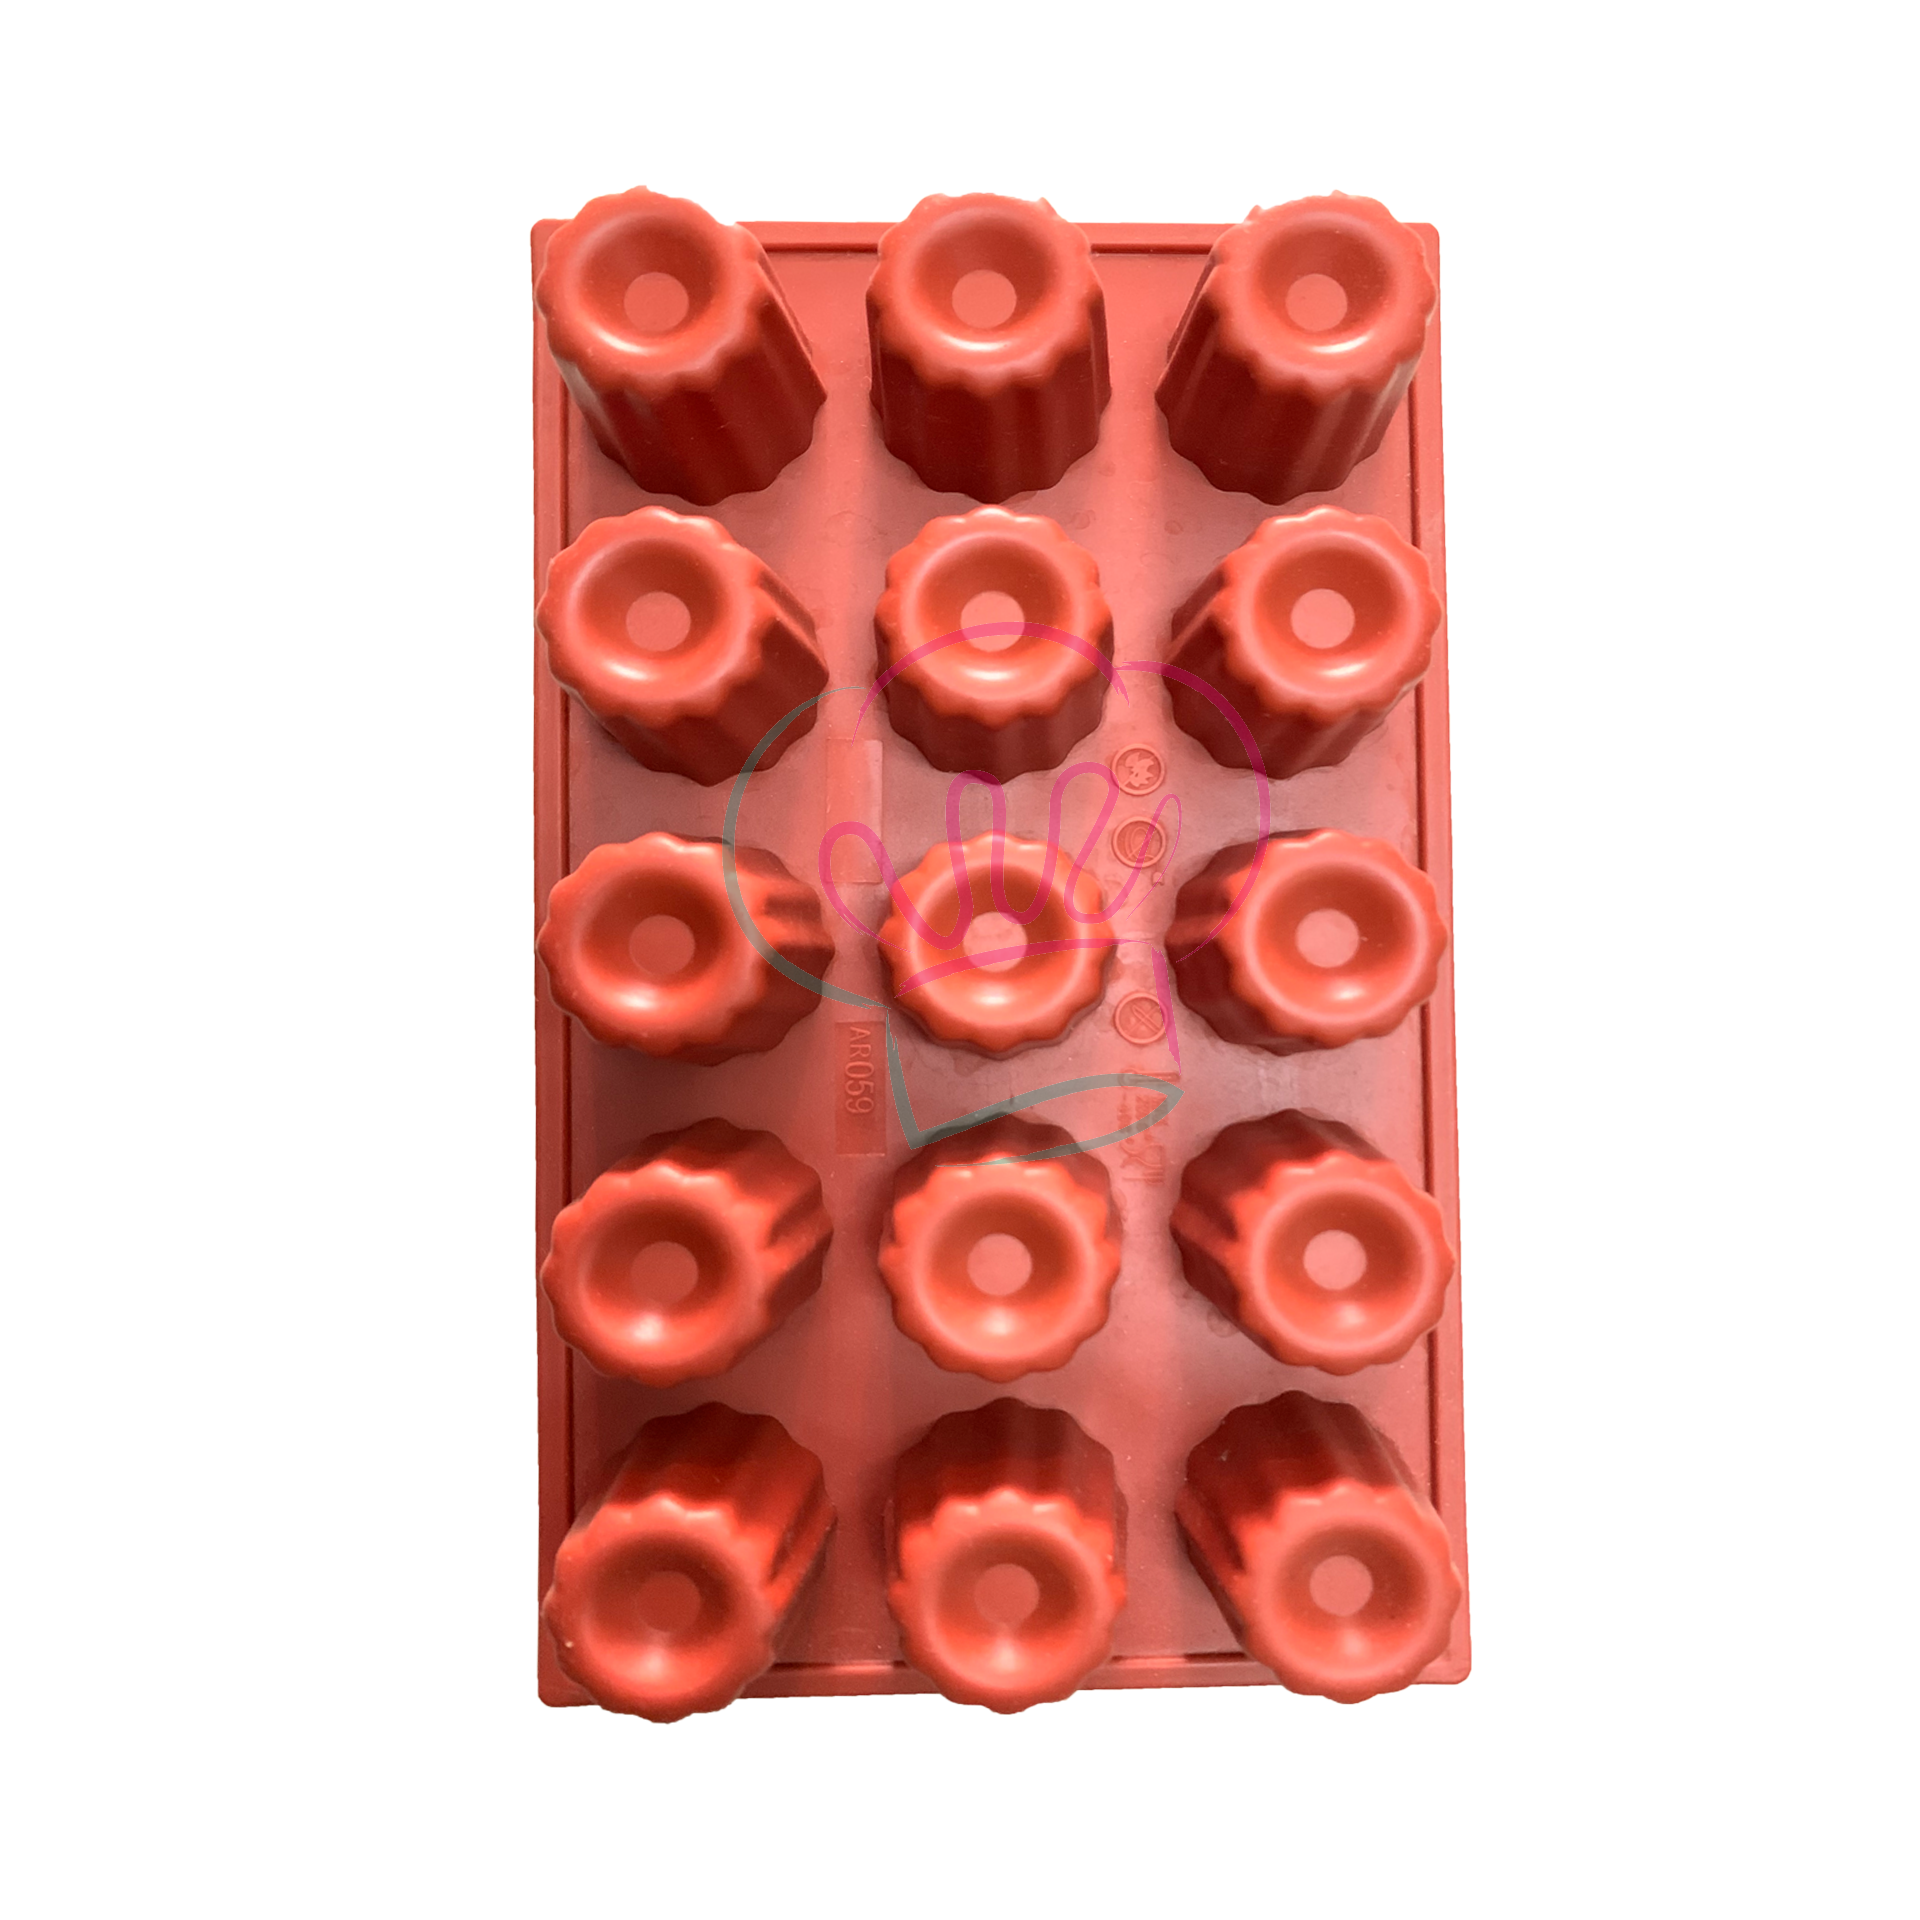 Canneles 15 Cavities Silicone Mould.png